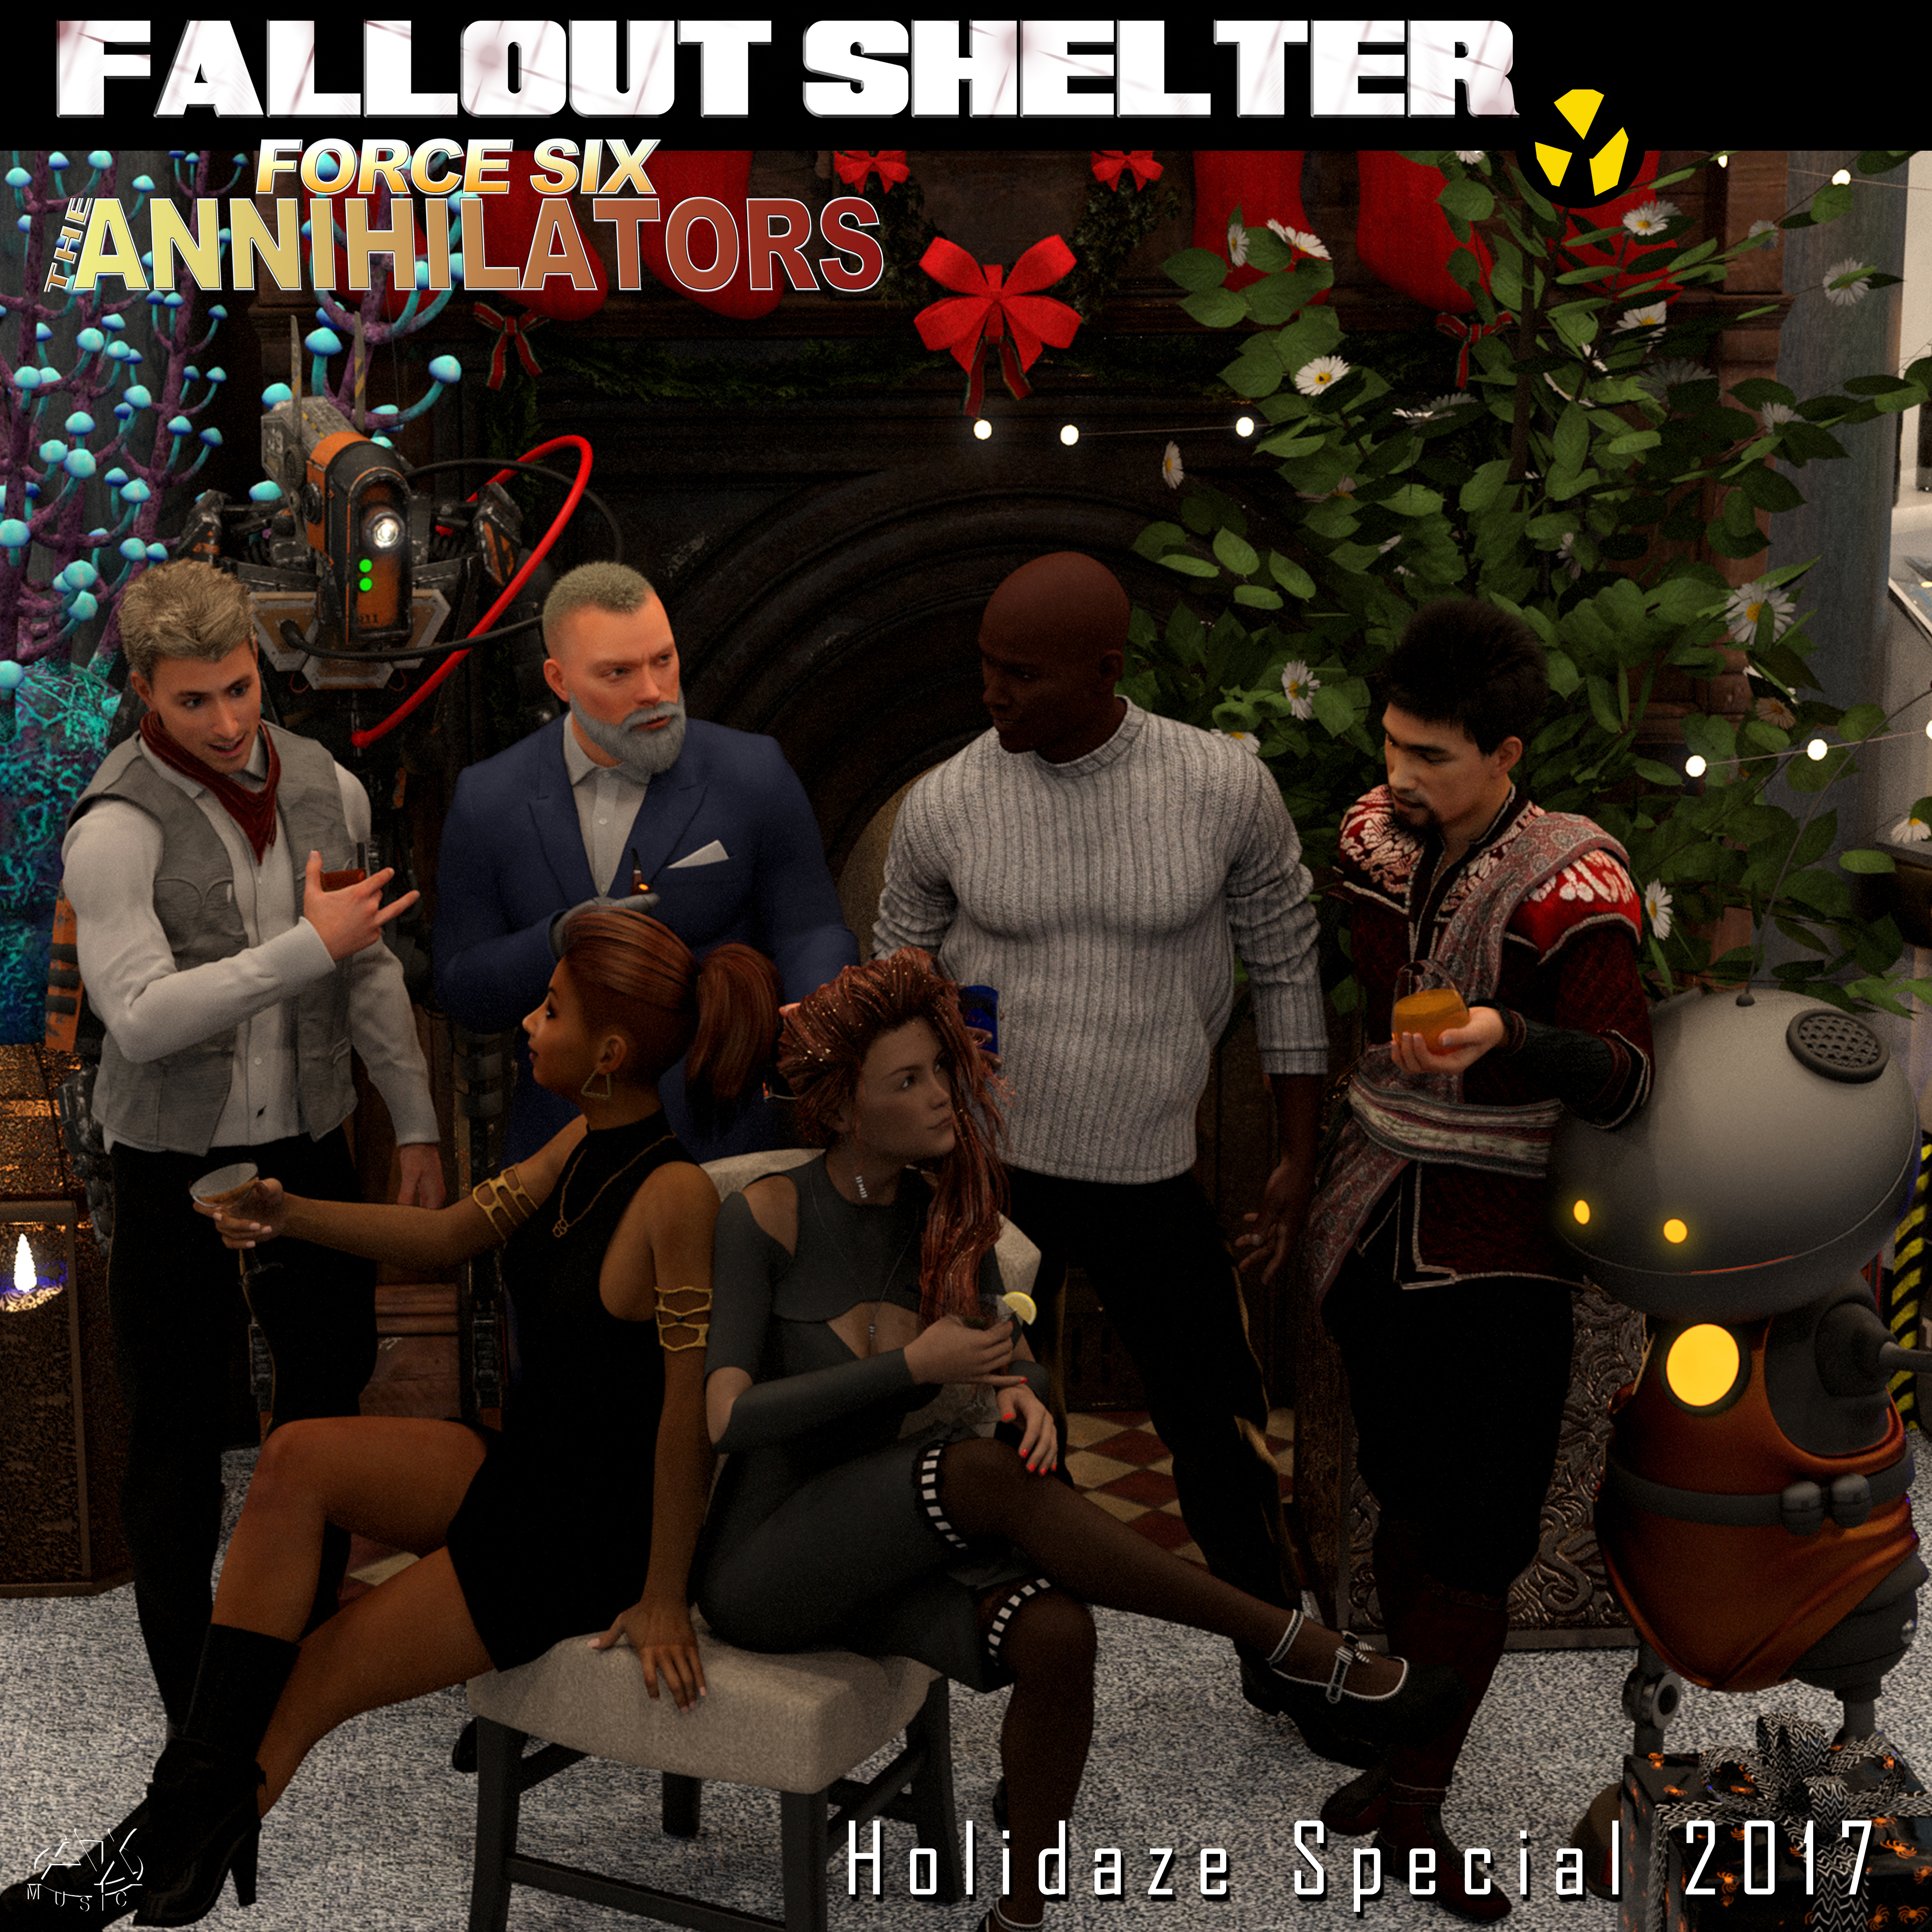 Fallout Shelter Holidaze Special COVER